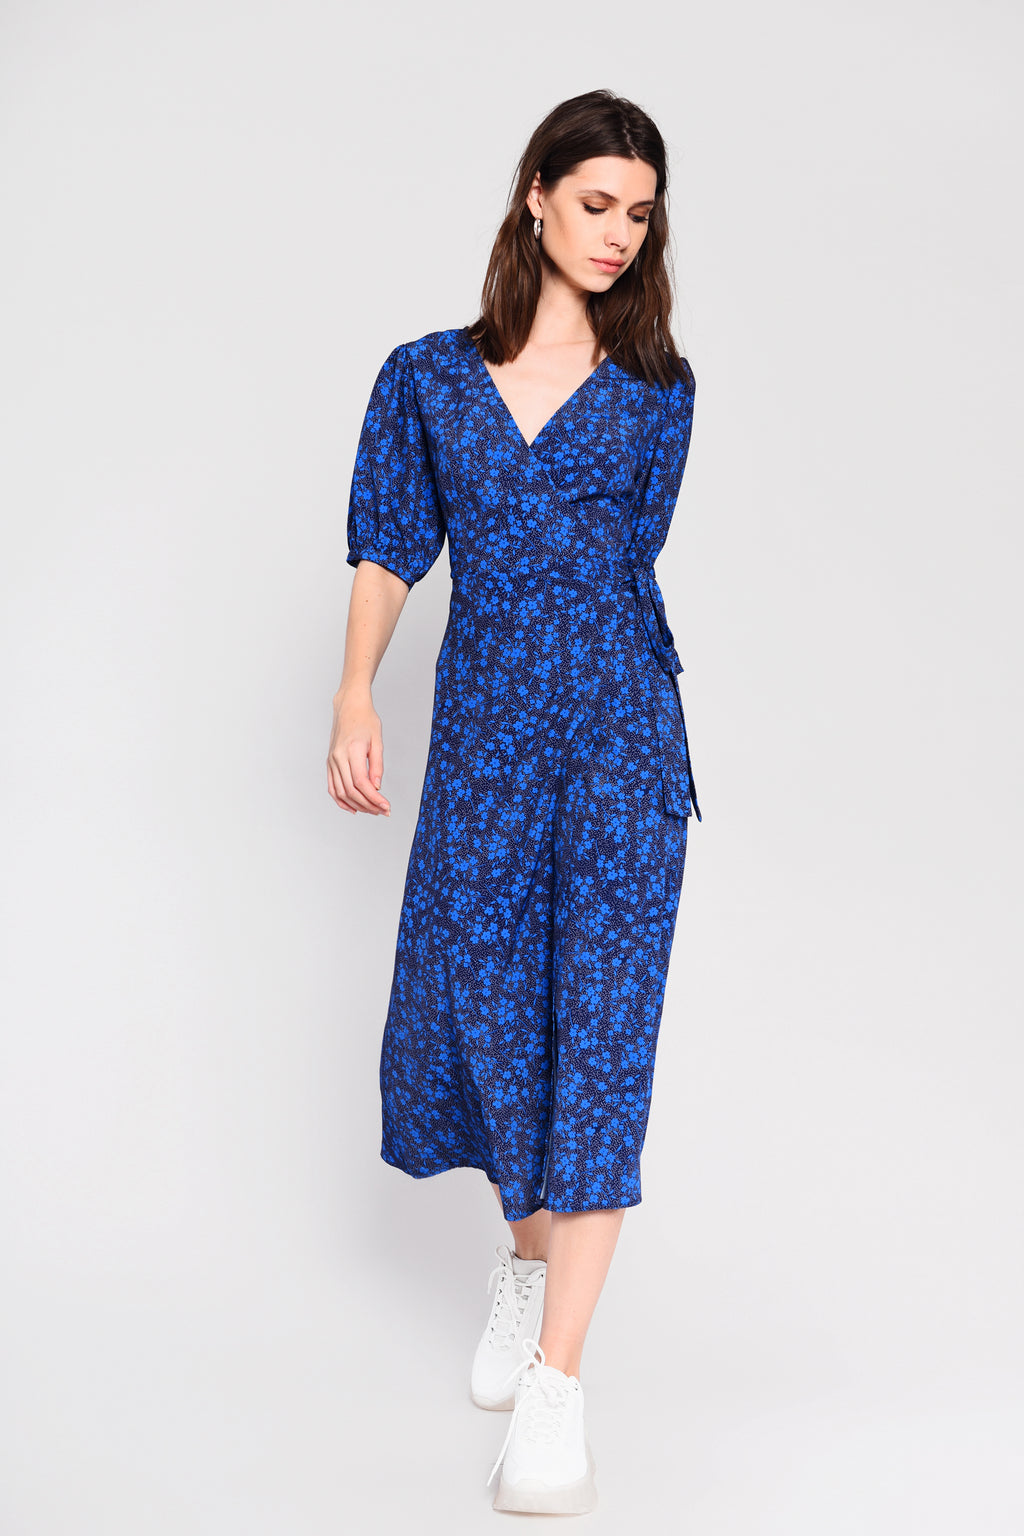 Blue ditsy floral wrap midi dress.